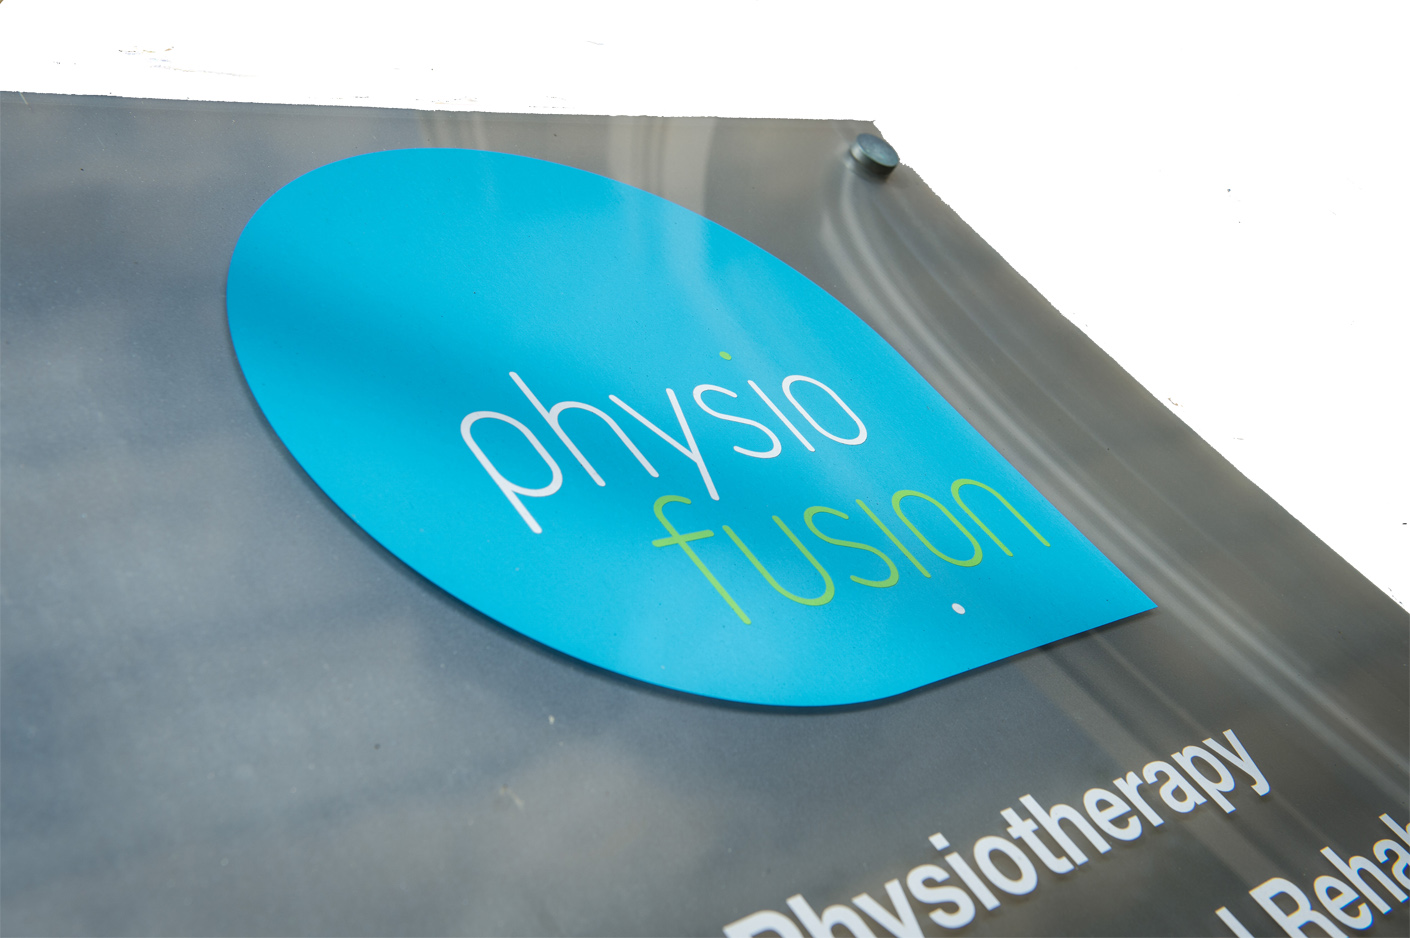 acupuncture case studies physiotherapy